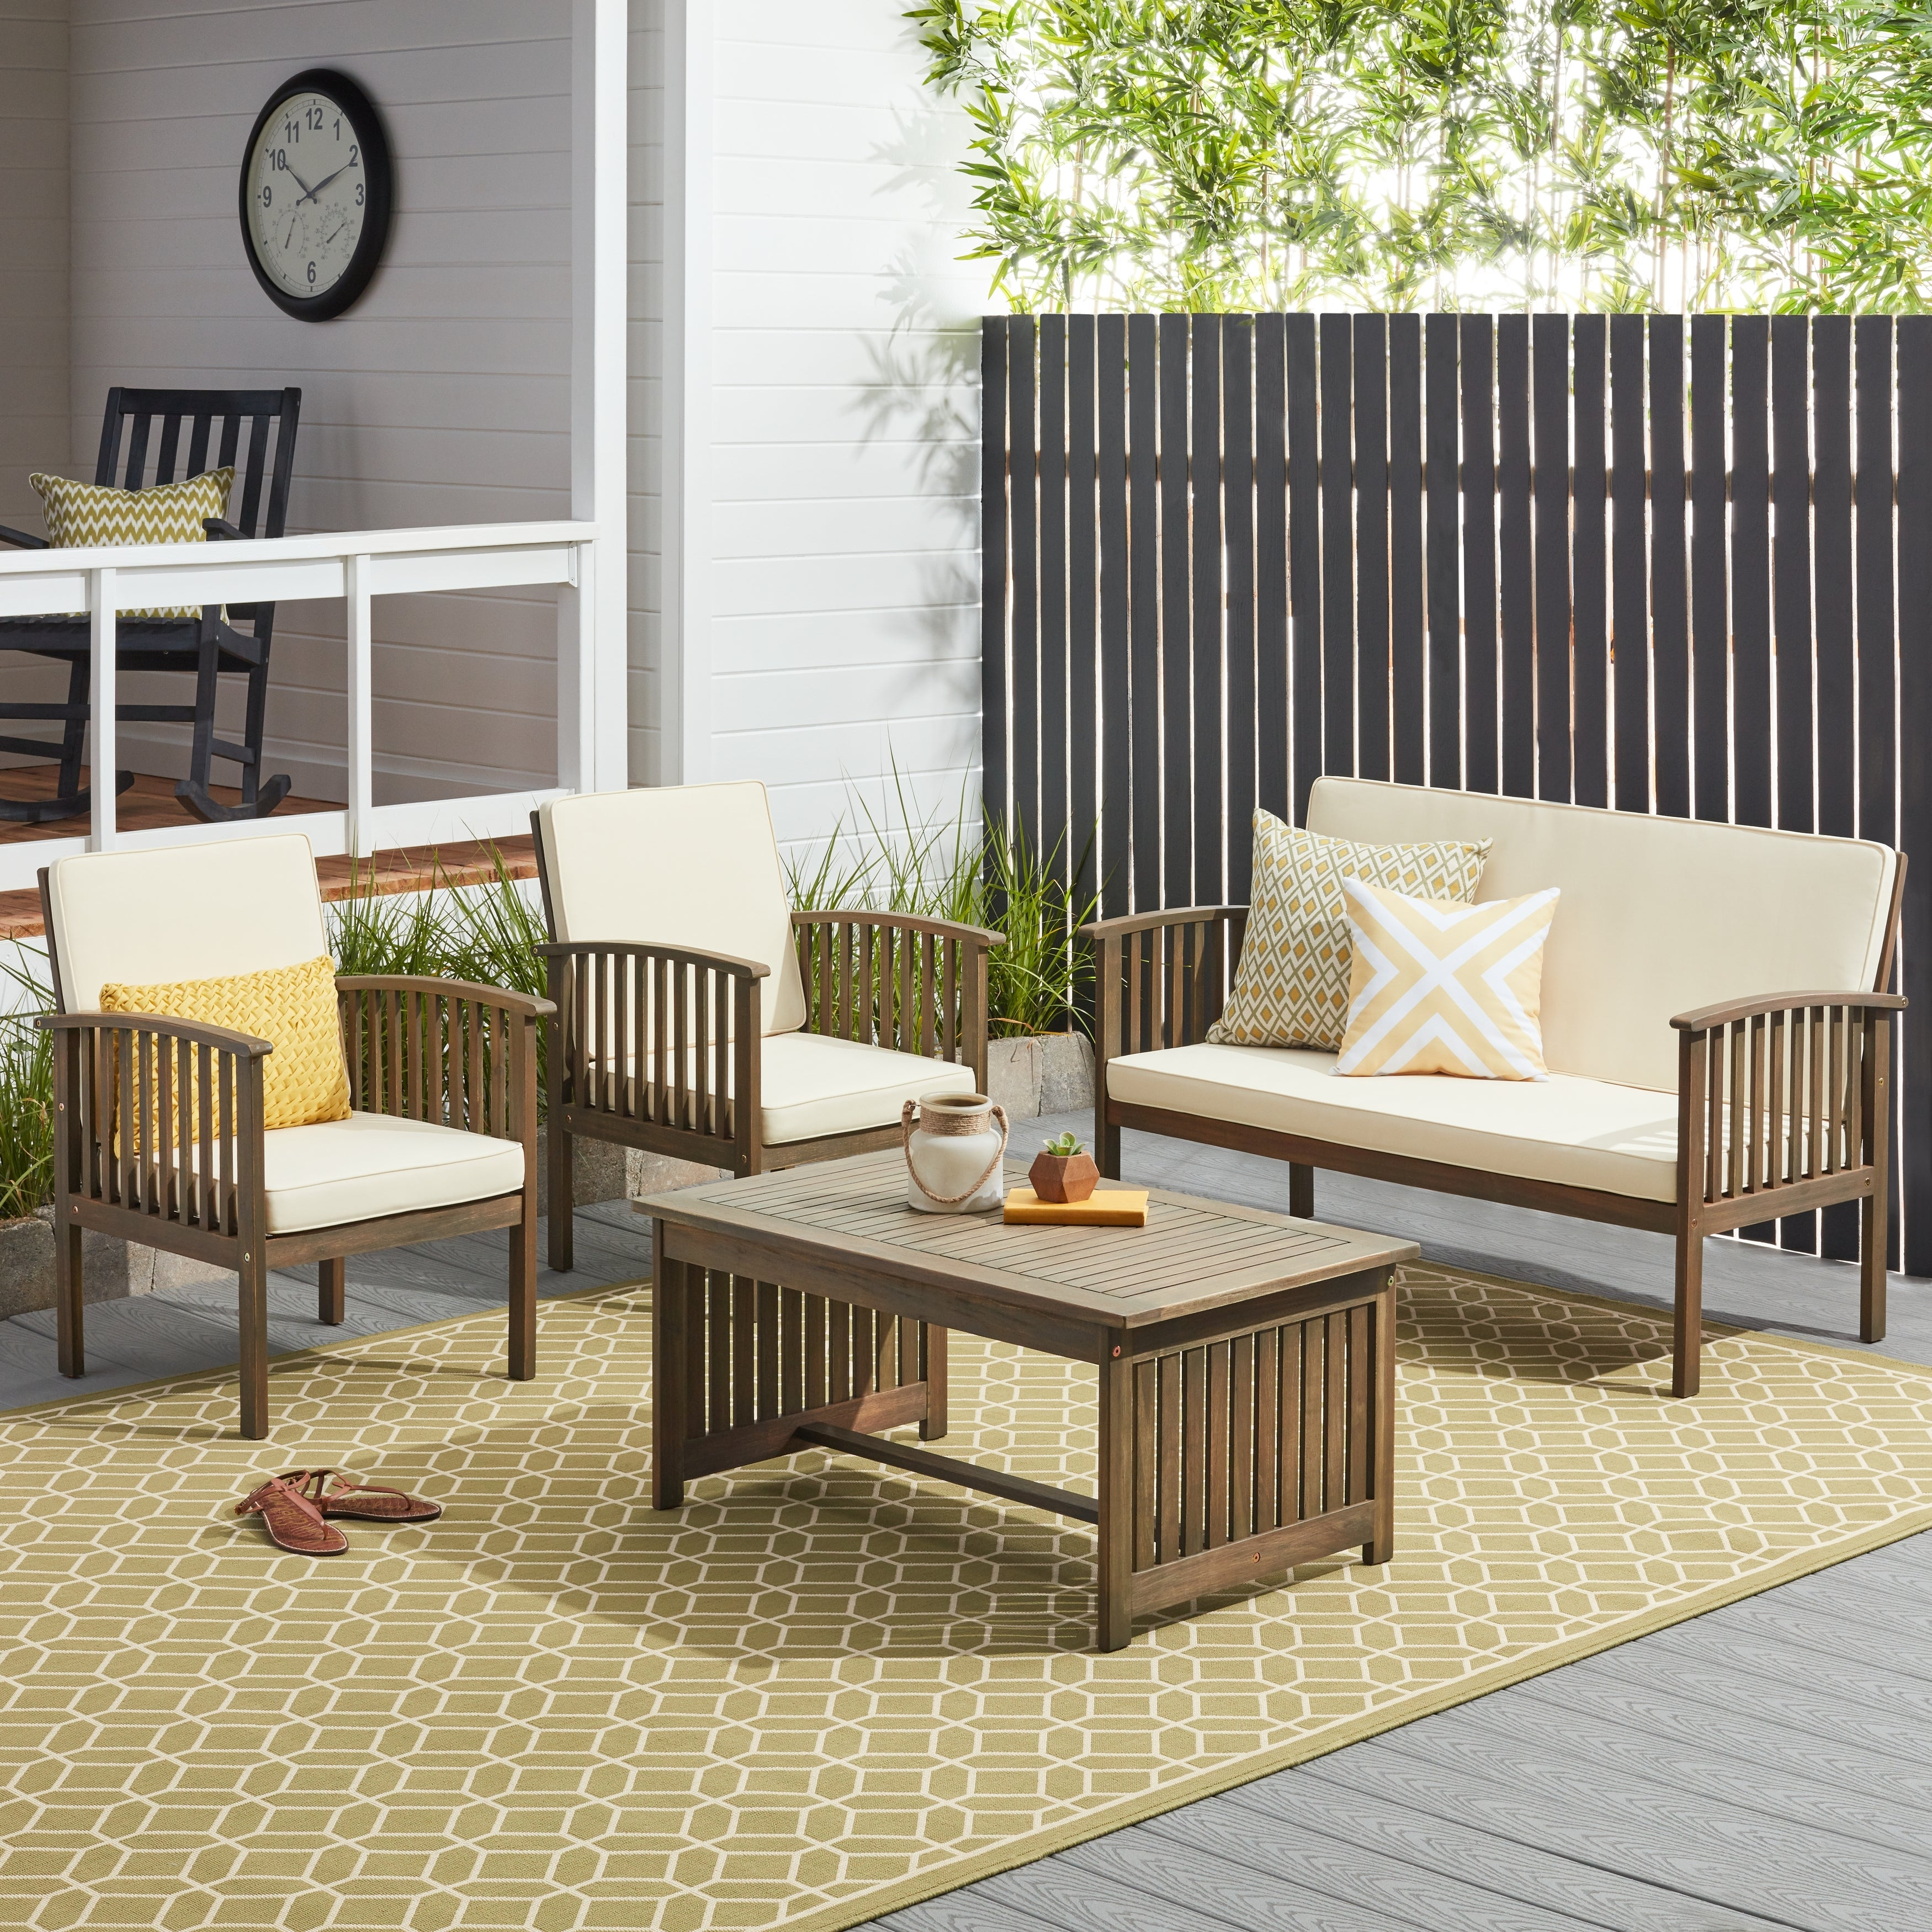 4PCS Patio Set Sofa Coffee Table Chairs Acacia Wood Outdoor Garden Decorate Home